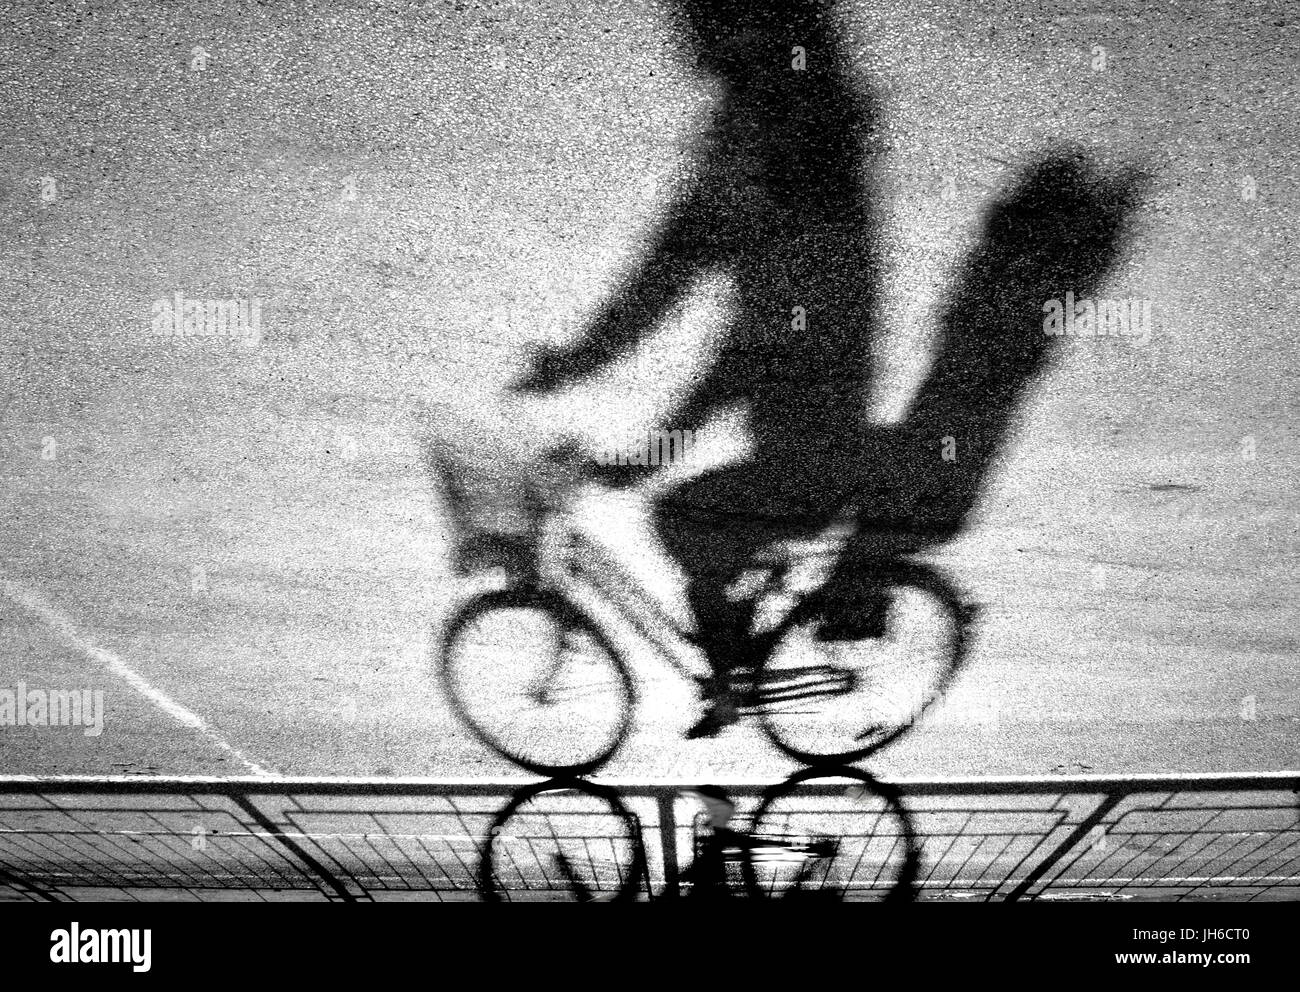 Blurry cyclist with kid rear seat silhouette and shadow on a protected bike path in black and white upside down - Stock Image